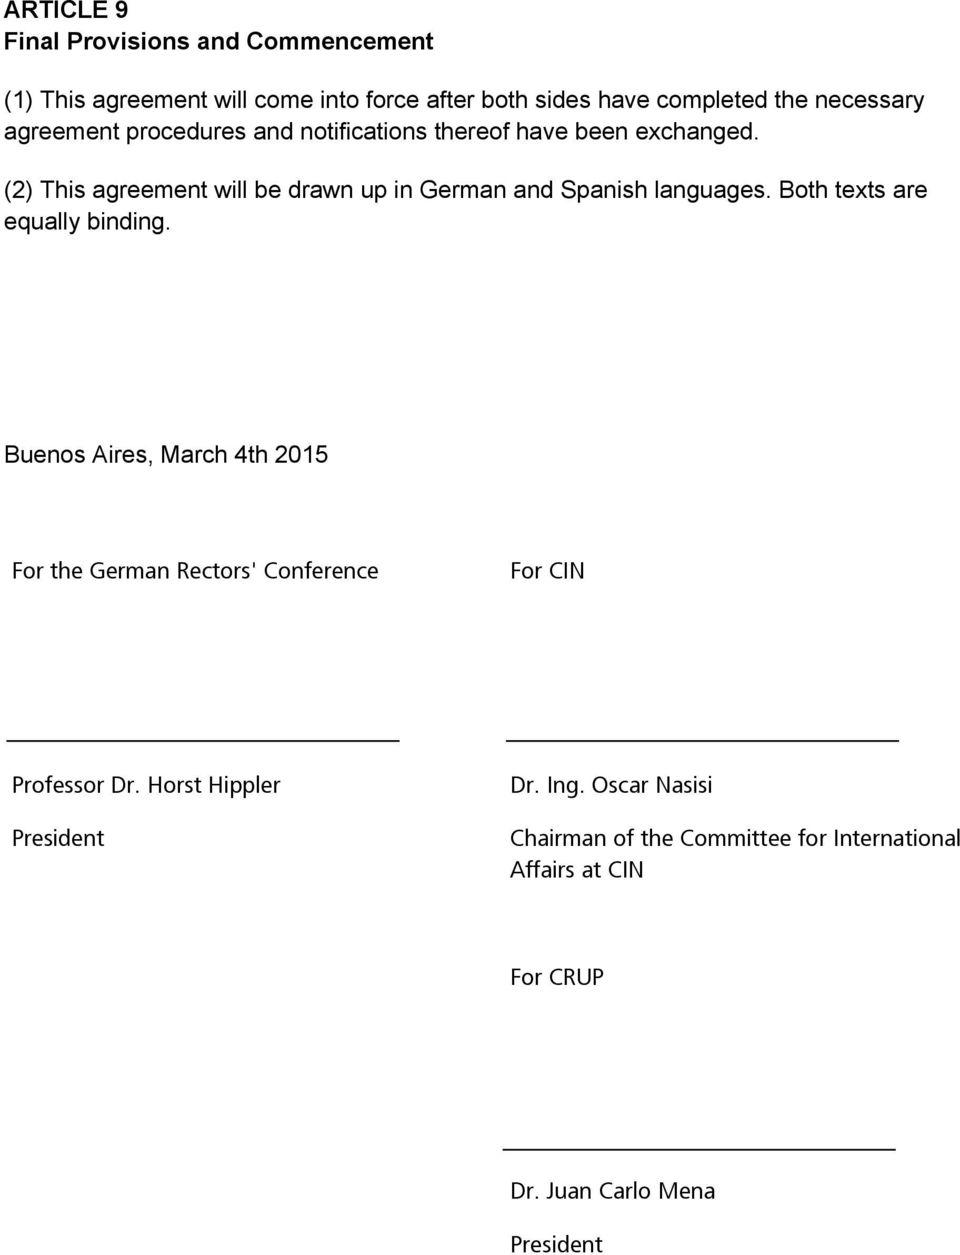 (2) This agreement will be drawn up in German and Spanish languages. Both texts are equally binding.